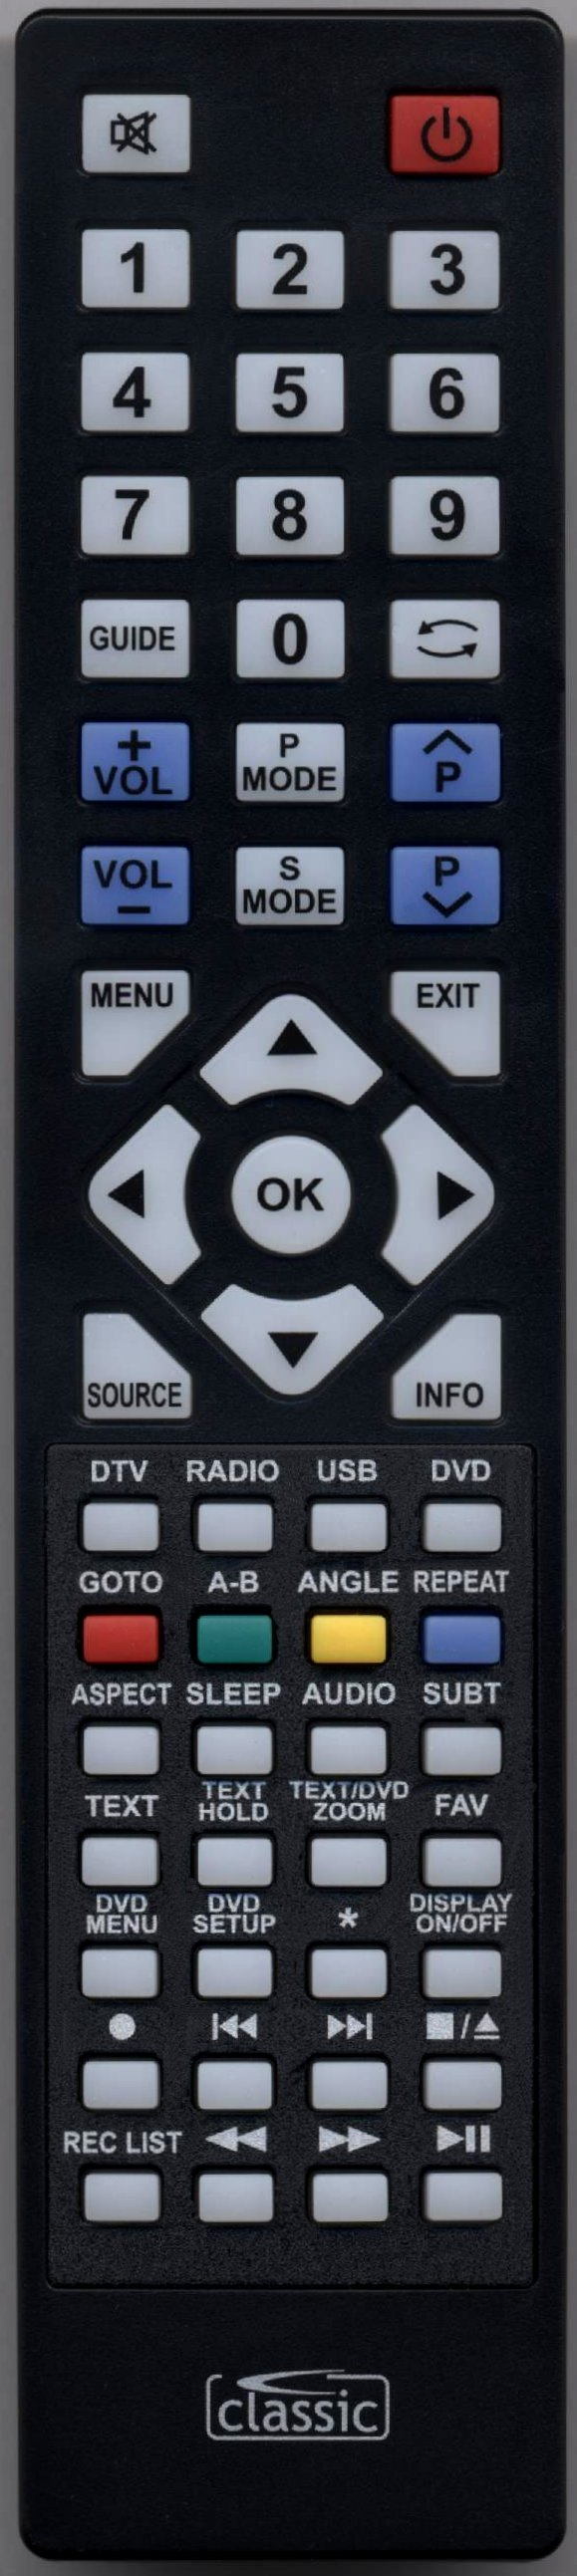 BLAUPUNKT 50/148Z-GB-5B2-FGKU-UK Remote Control Alternative